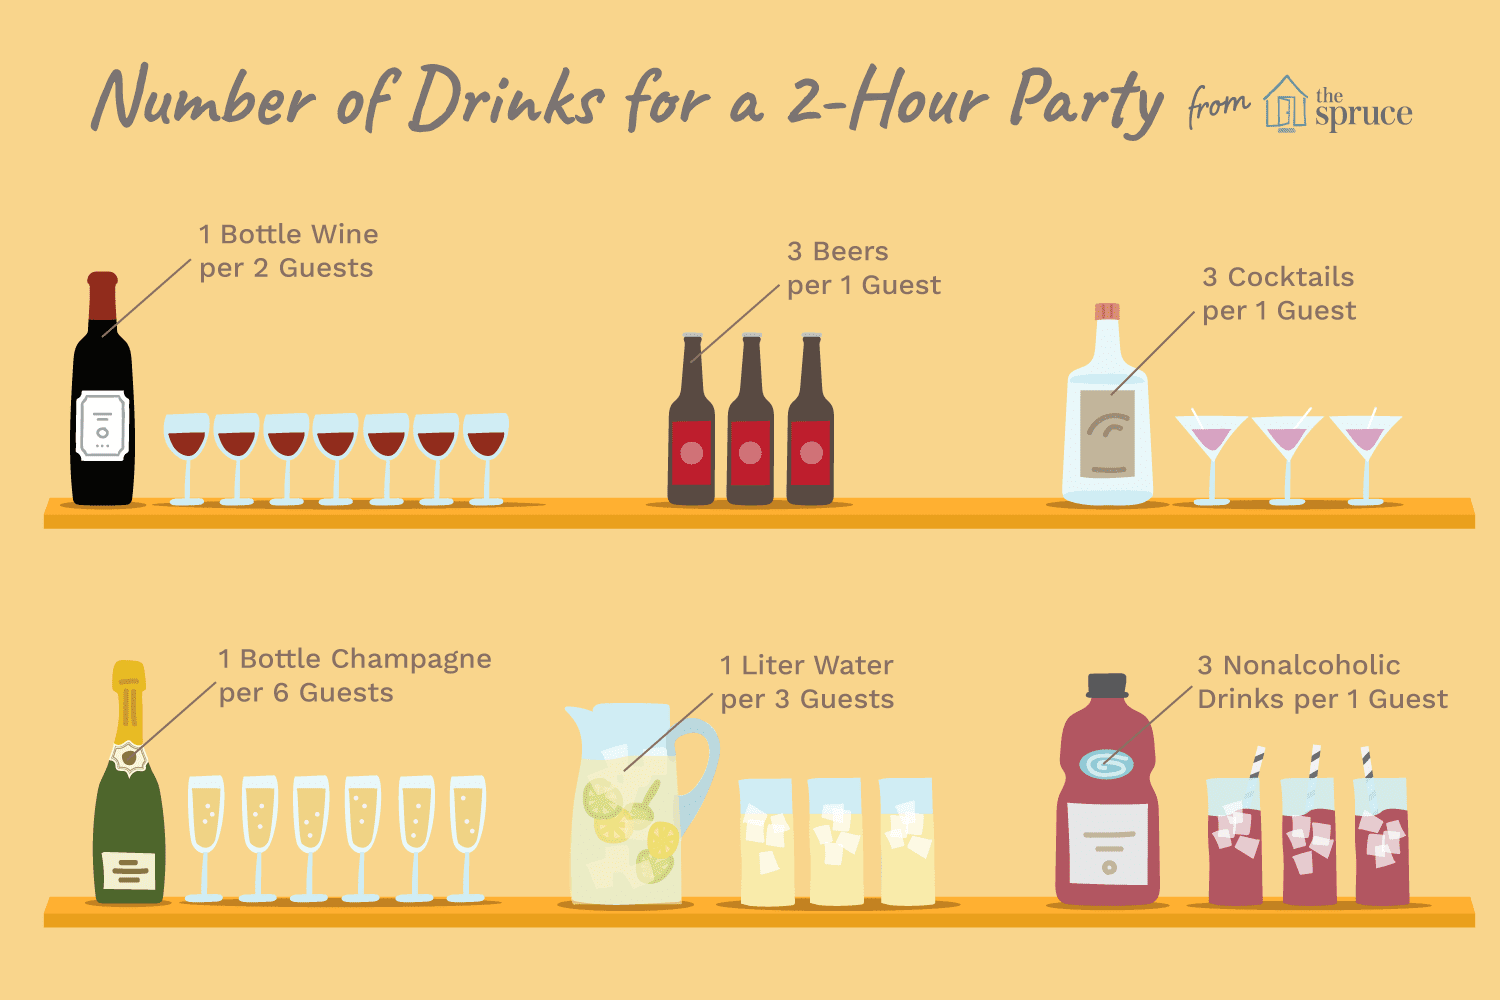 How To Calculate The Number Of Drinks For A Party